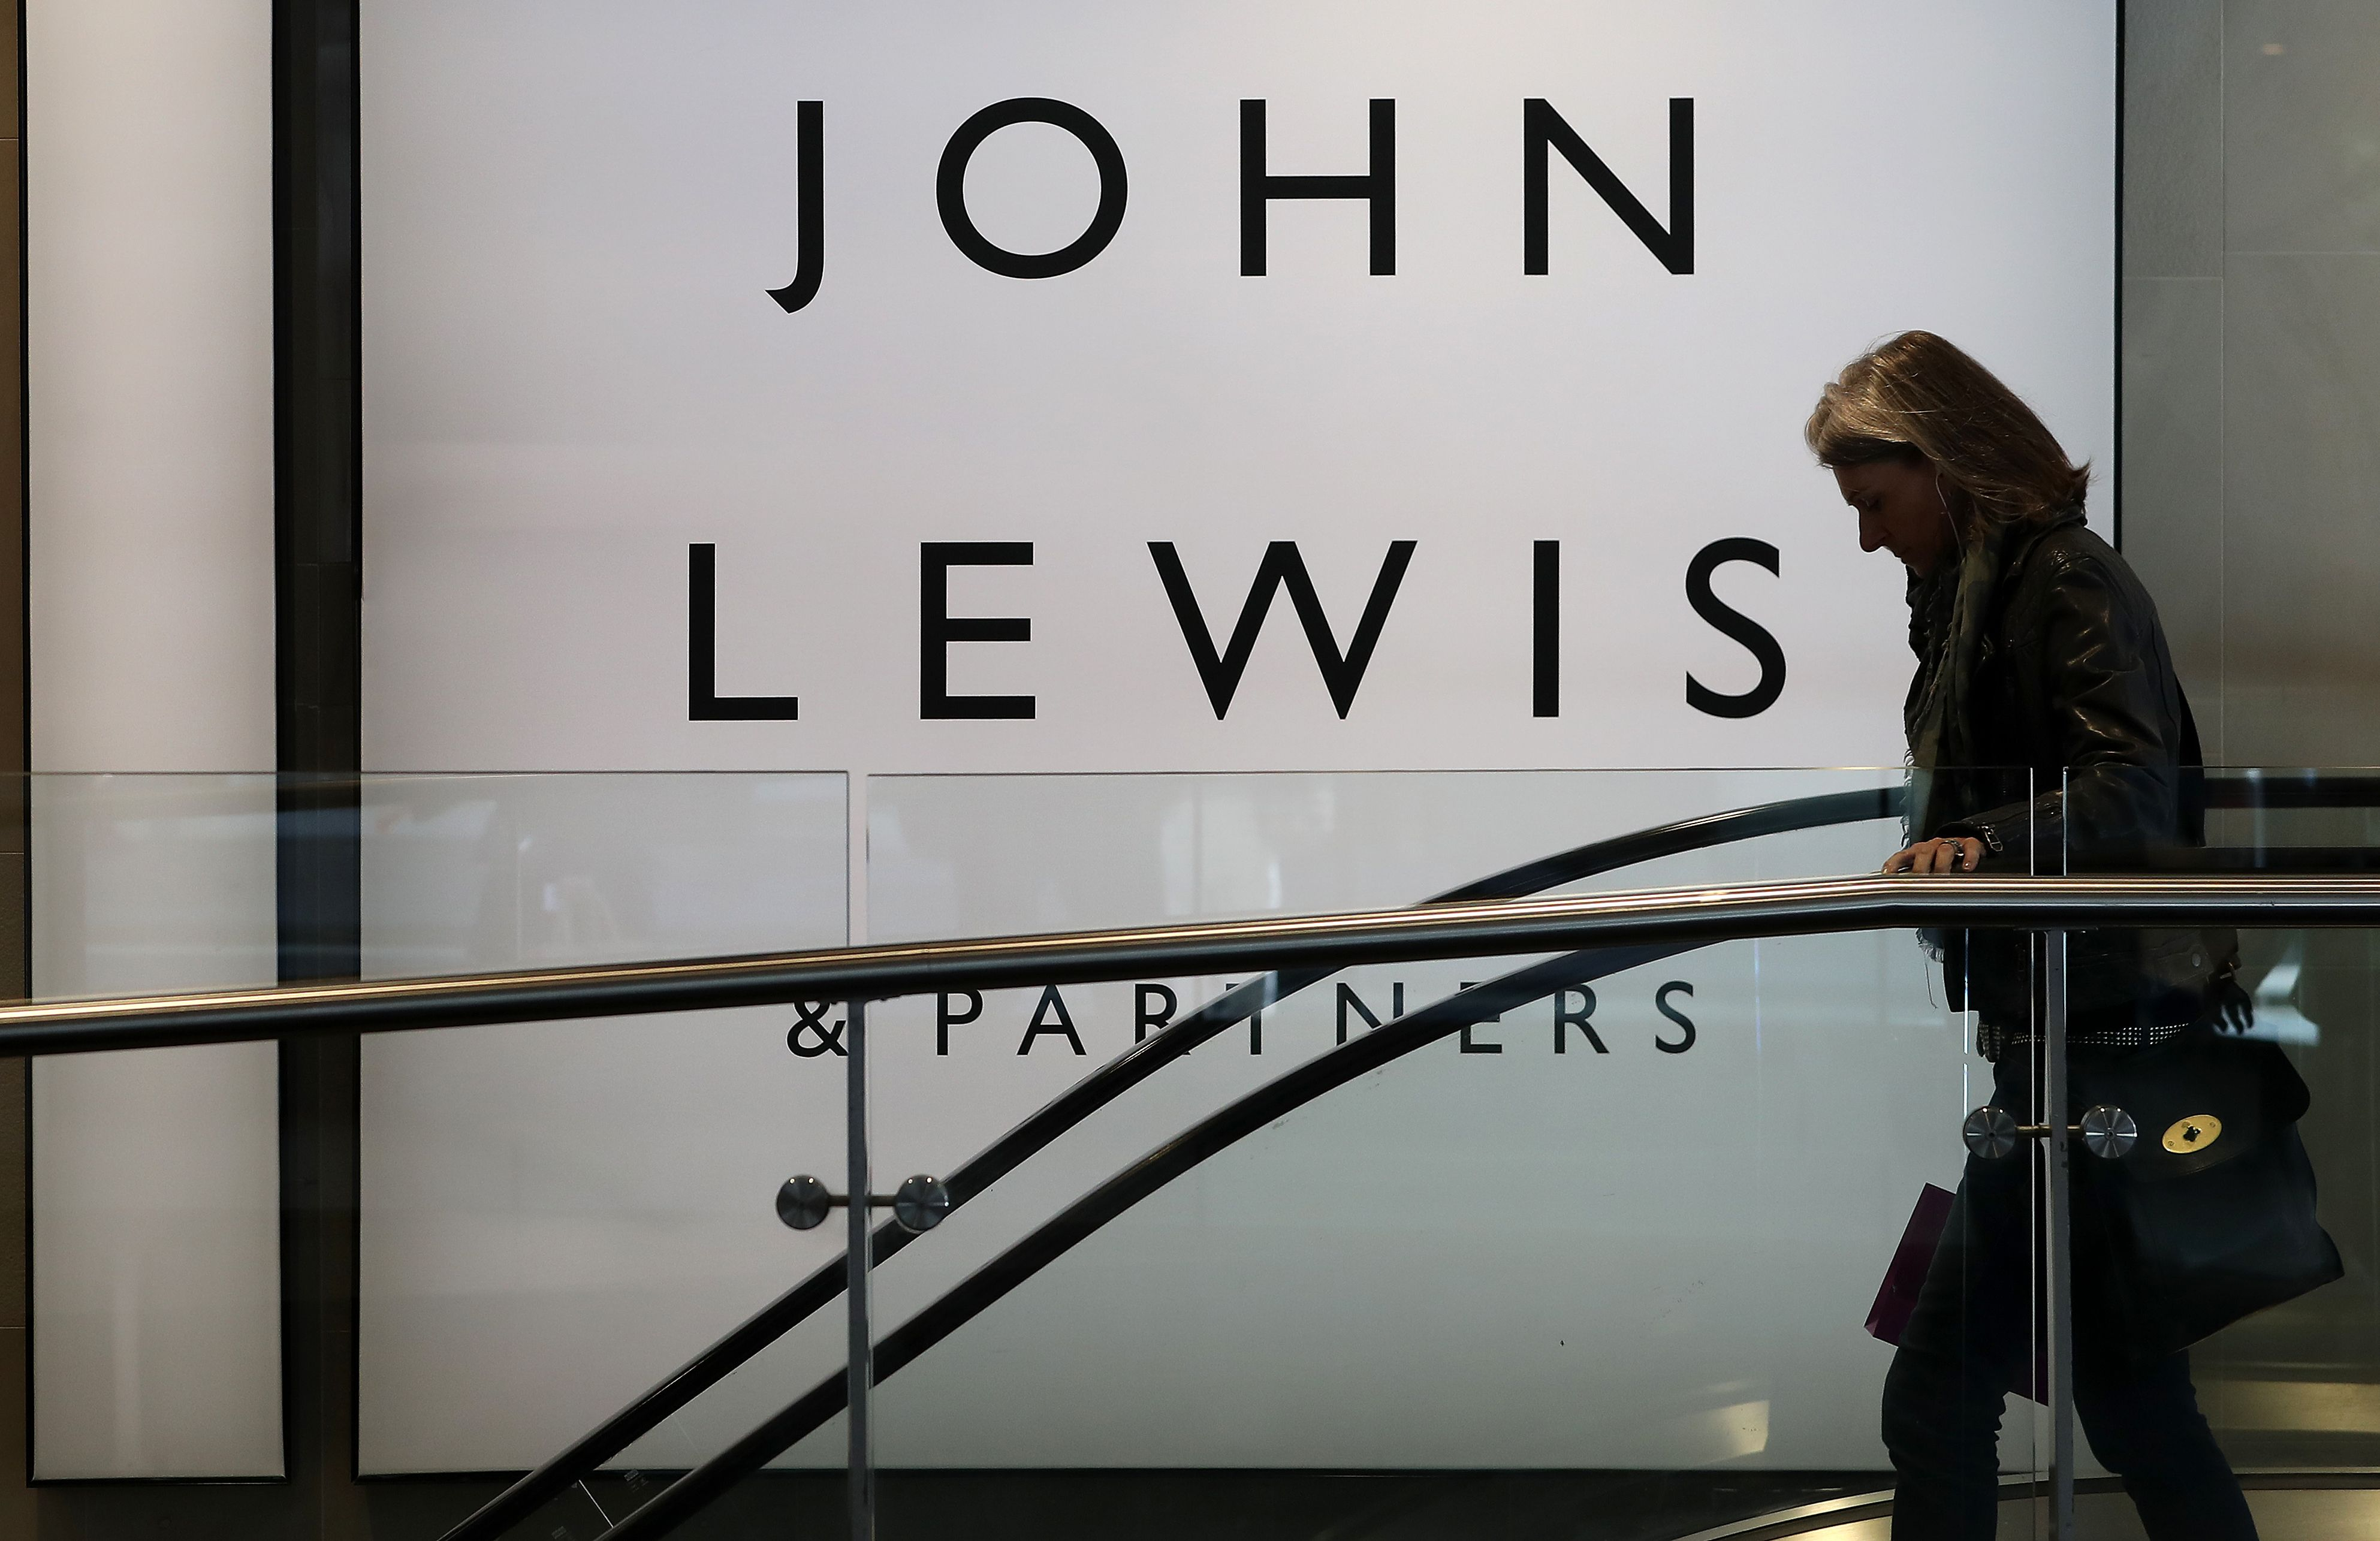 John Lewis is the first major retailer to suspend its click and collect service